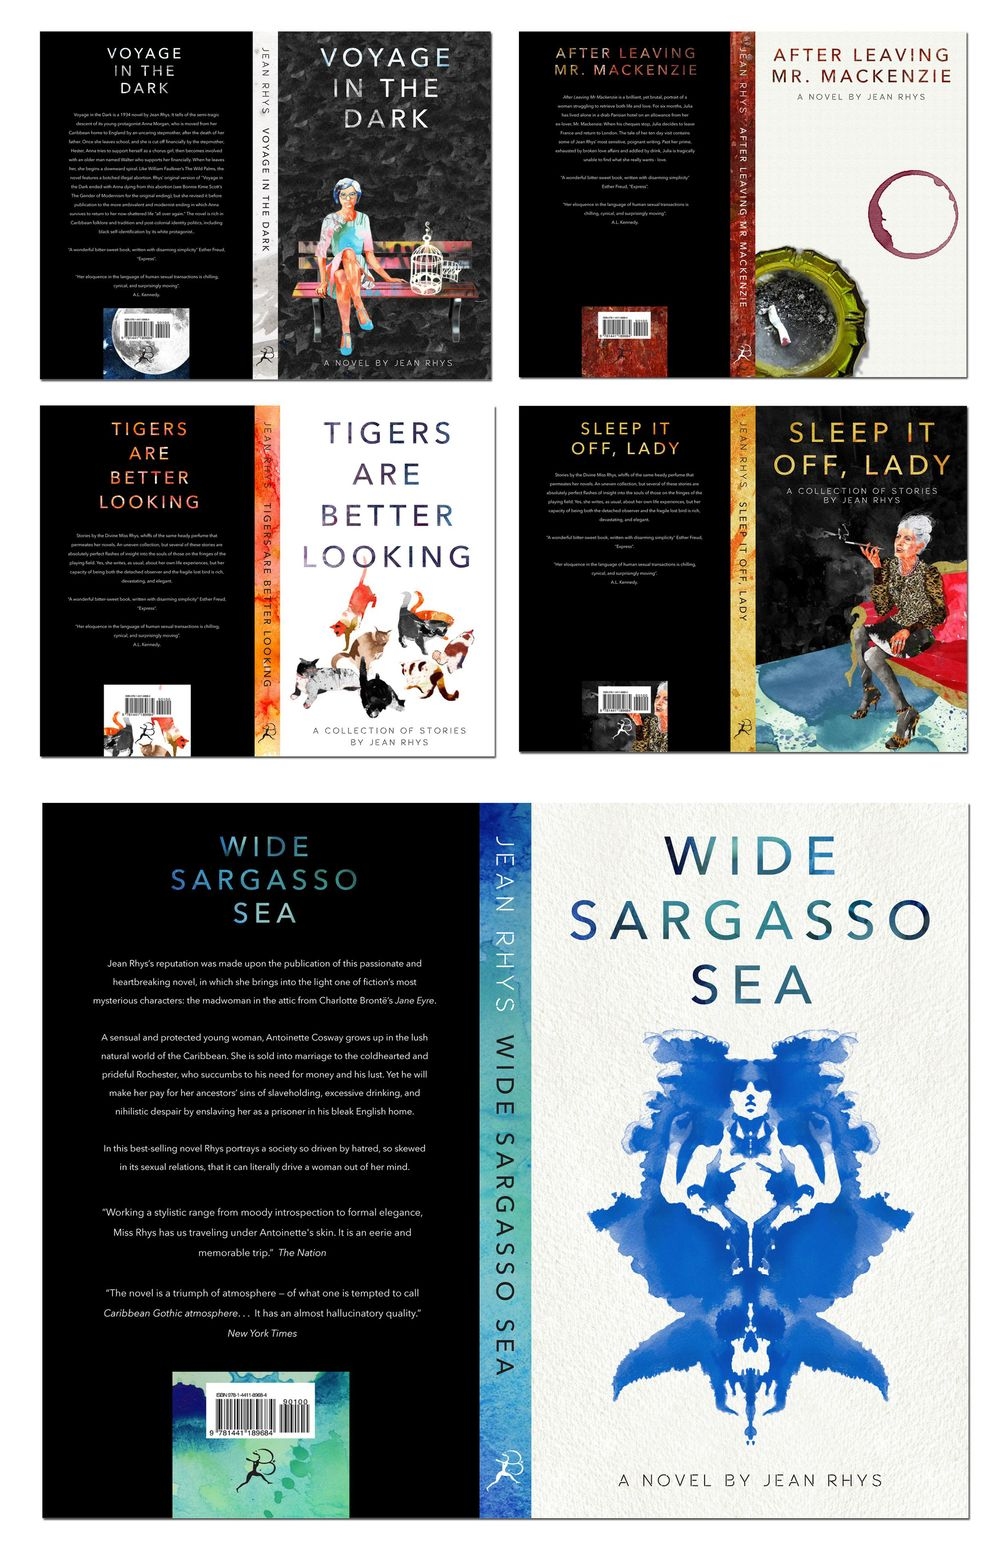 Wide Sargasso Sea - image 2 - student project